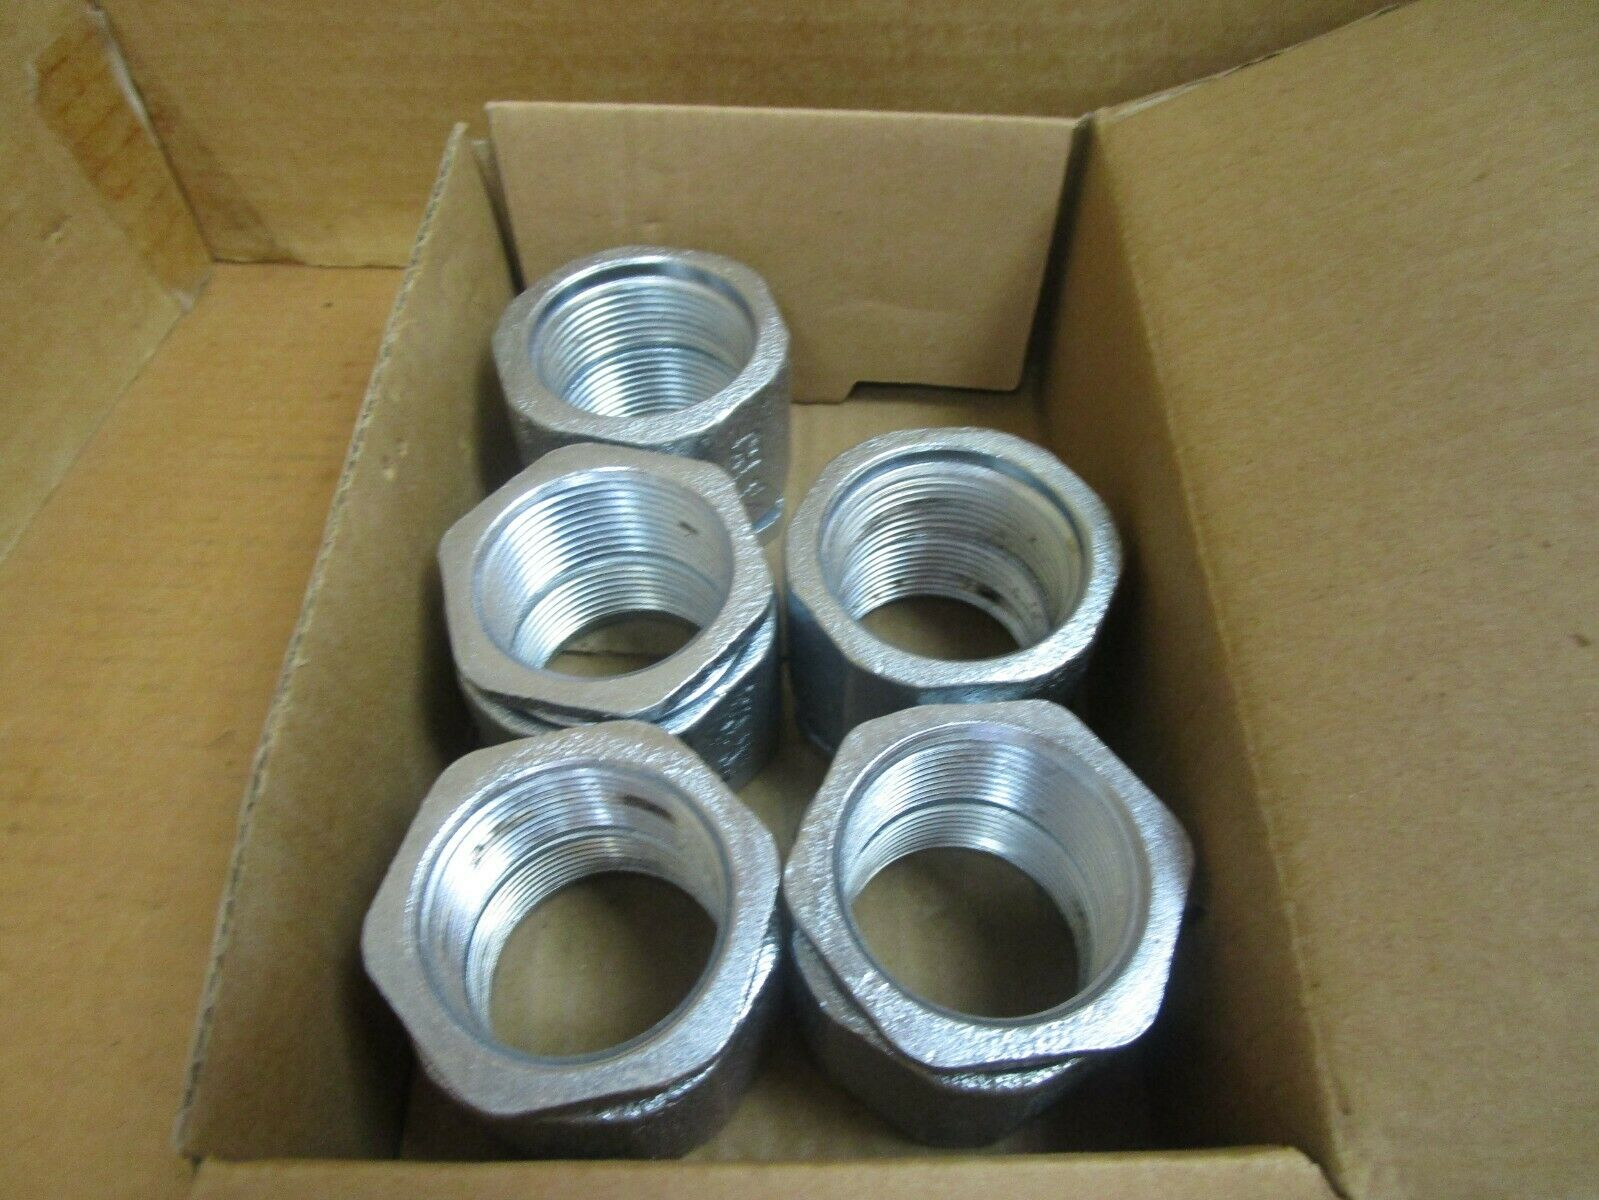 """Crouse Hinds 3-Piece Conduit Coupling 193 1-1/4"""" NPT Lot of 5 New"""